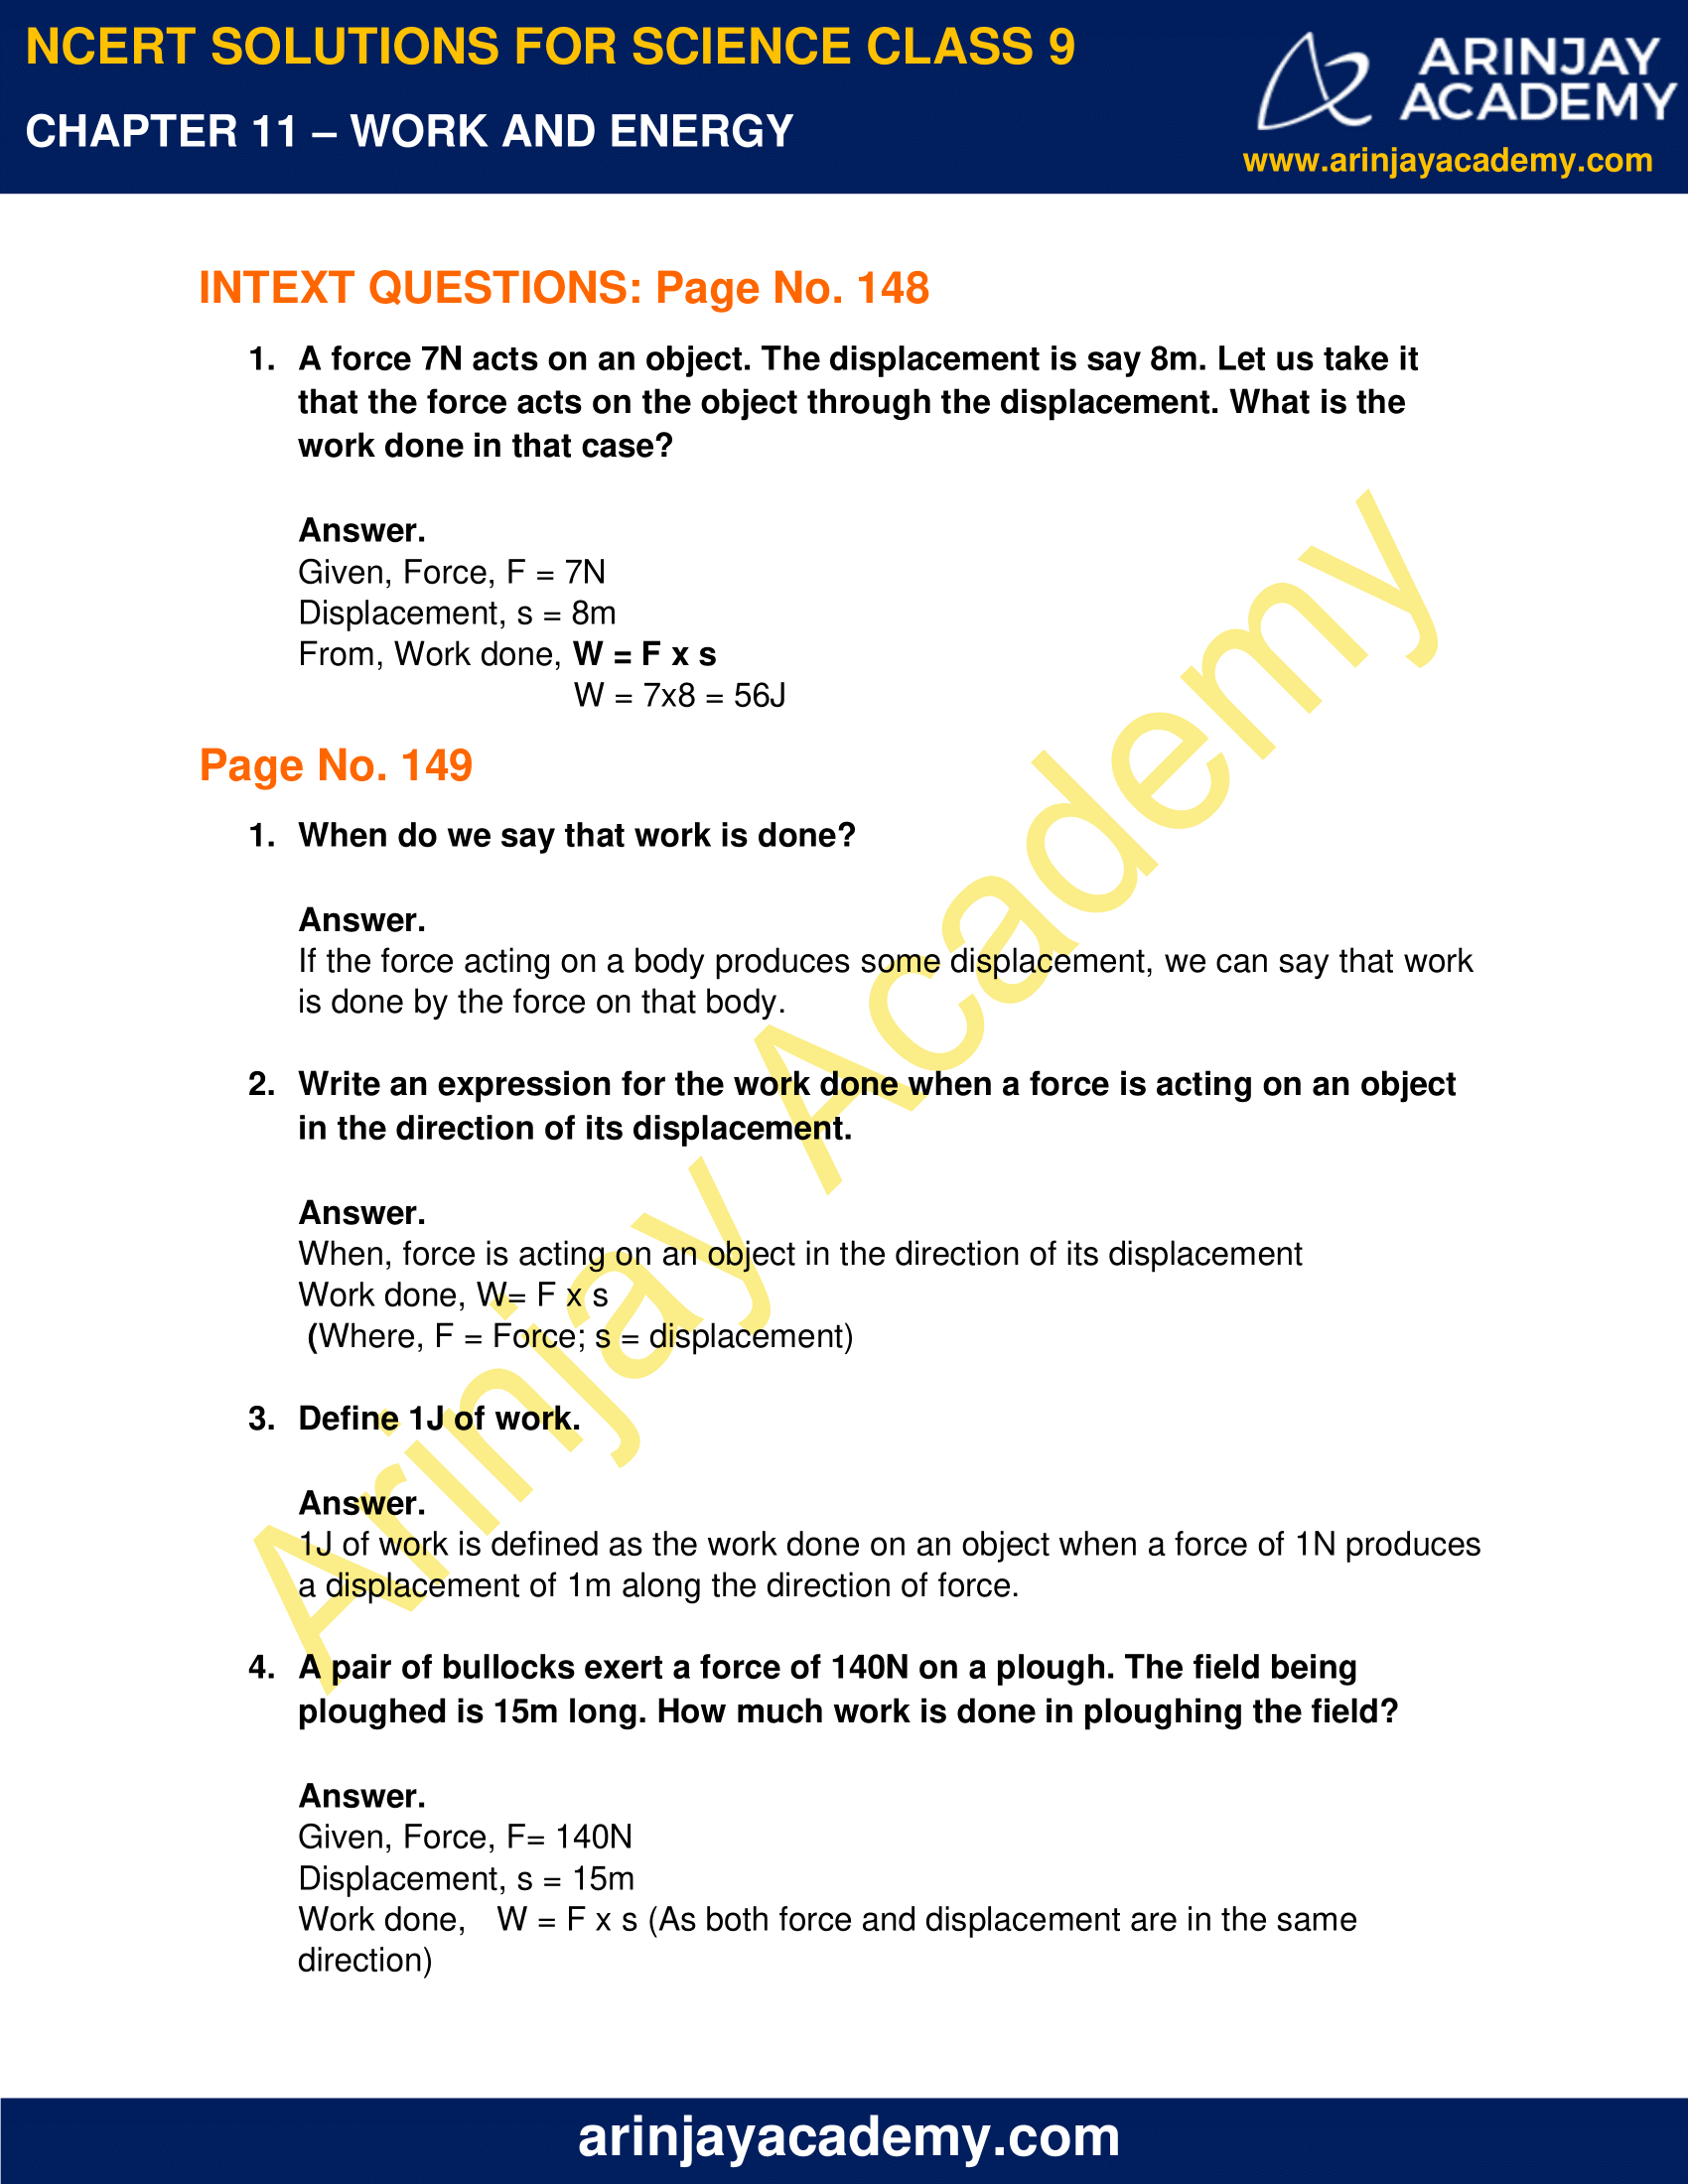 NCERT Solutions for Class 9 Science Chapter 11 - Work and Energy image 1